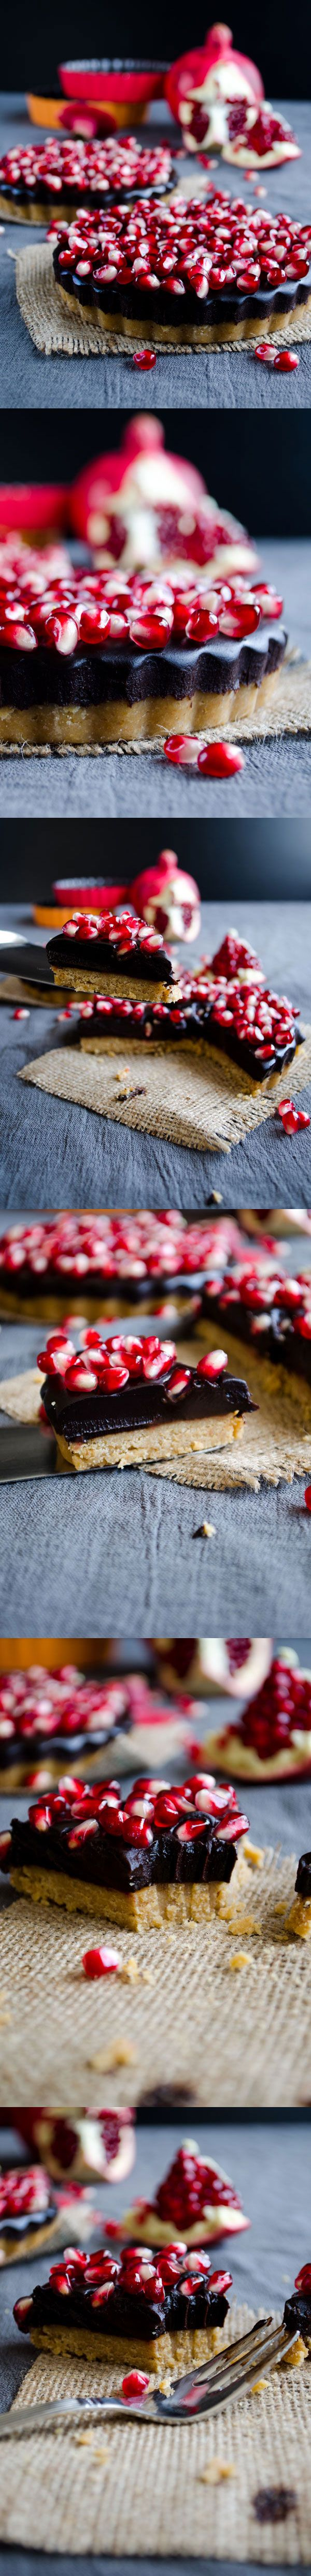 No-Bake Chocolate Pomegranate Tart. Make sure to use #glutenfree versions of all ingredients in order to convert to Celiac safe gfree.